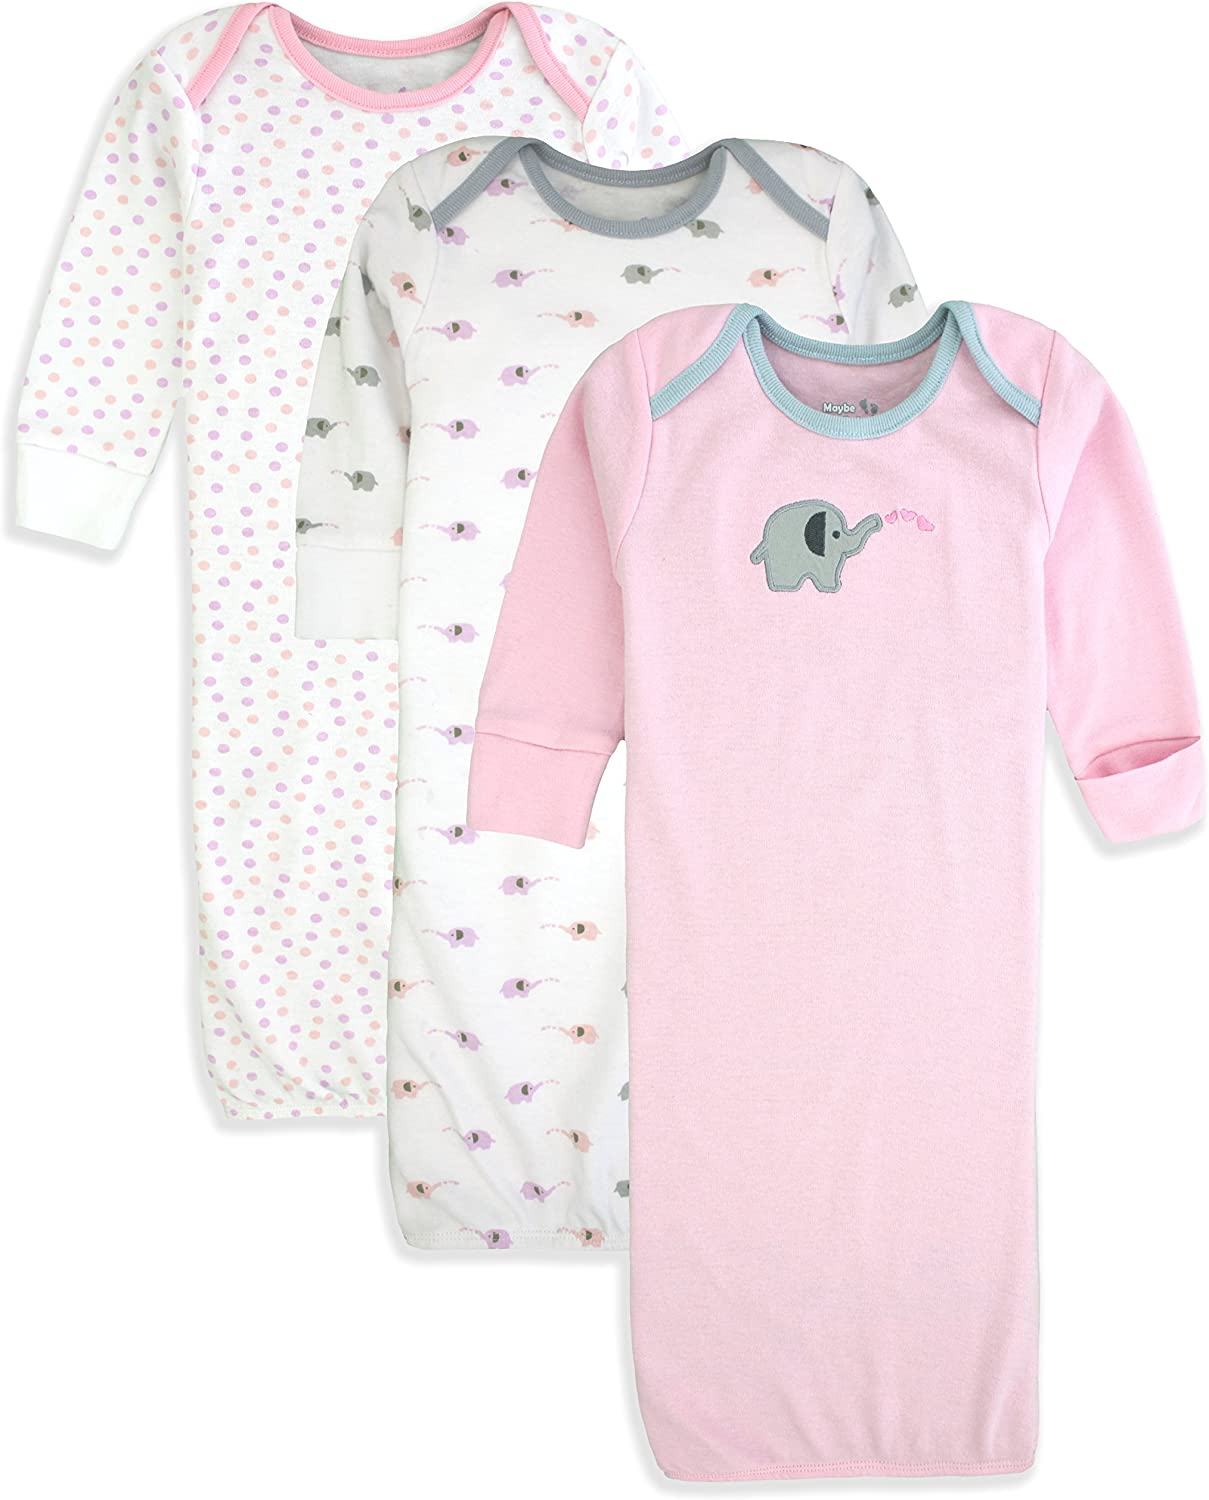 0-6 Months Maybe Baby Kids Infant Boys and Girls 3 Pack Set Cotton Baby Nightgowns w//Mitten Cuffs